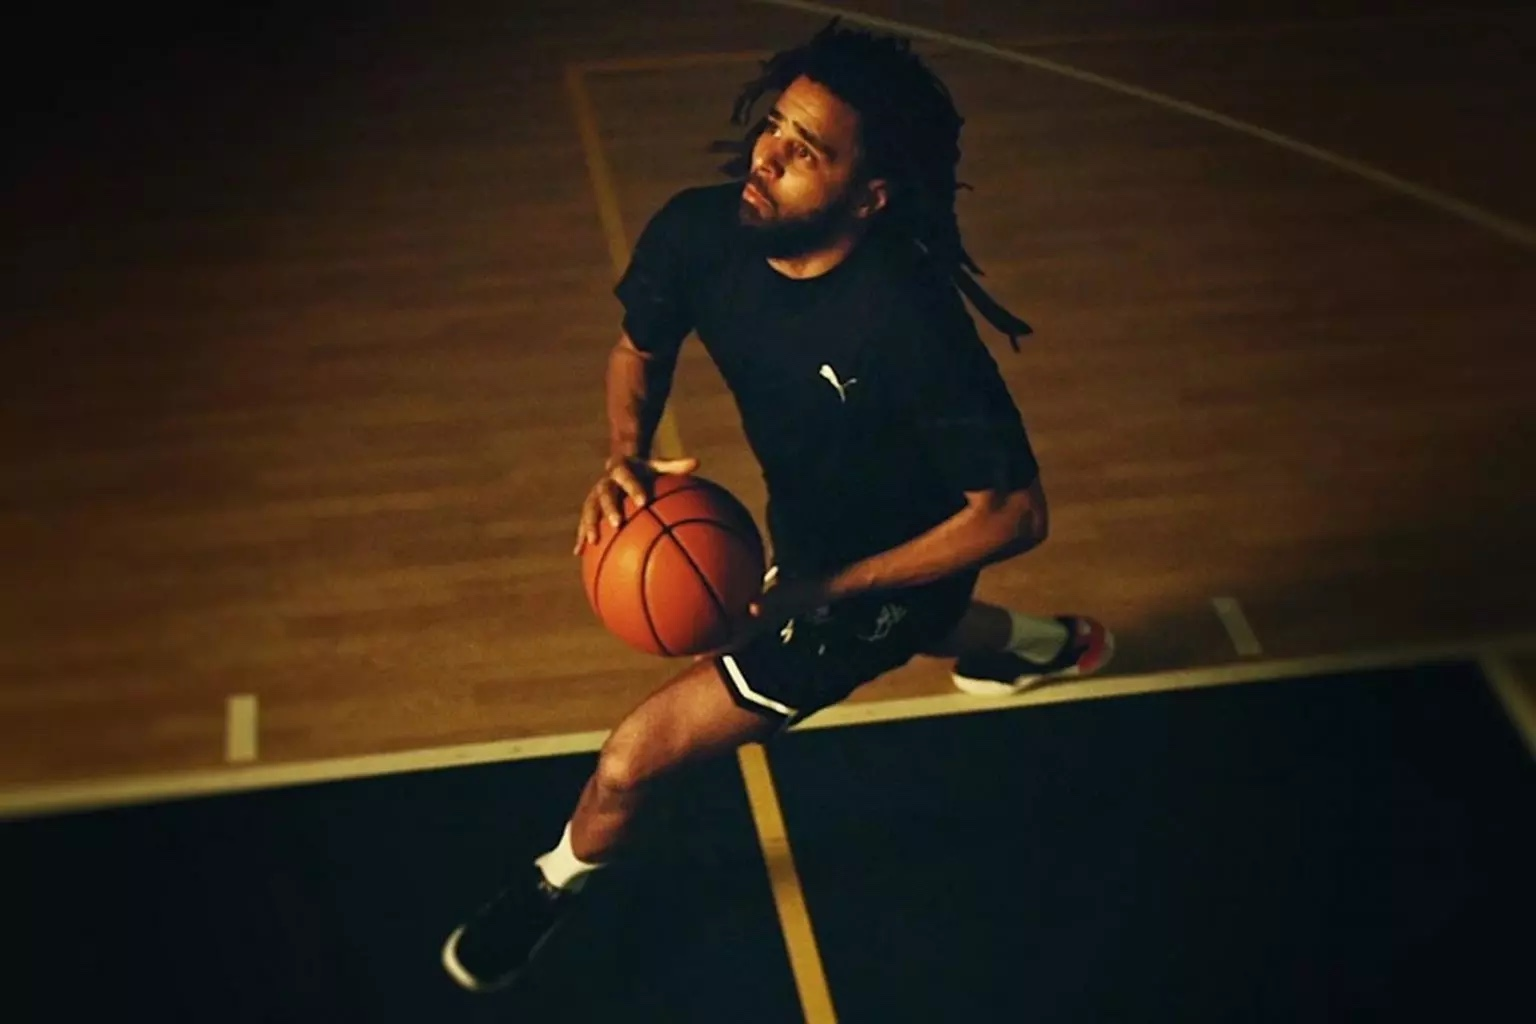 American rapper J. Cole joins Rwanda basketball team